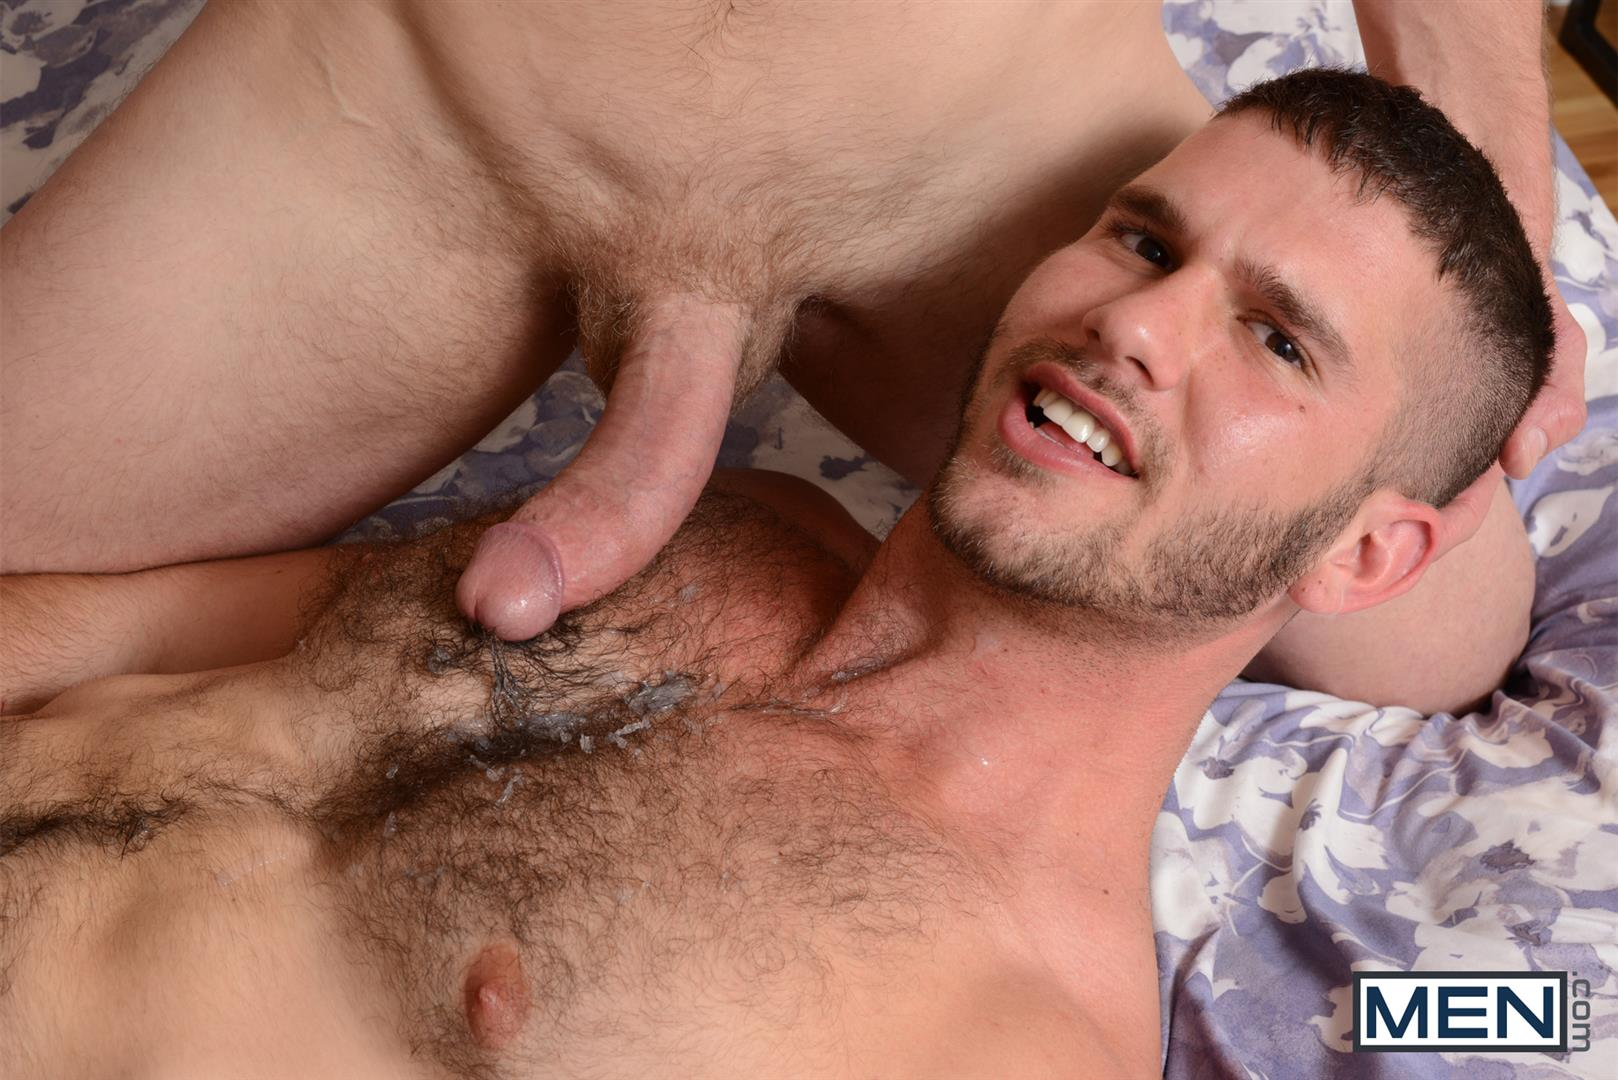 Jock gets his ass drilled with power toy